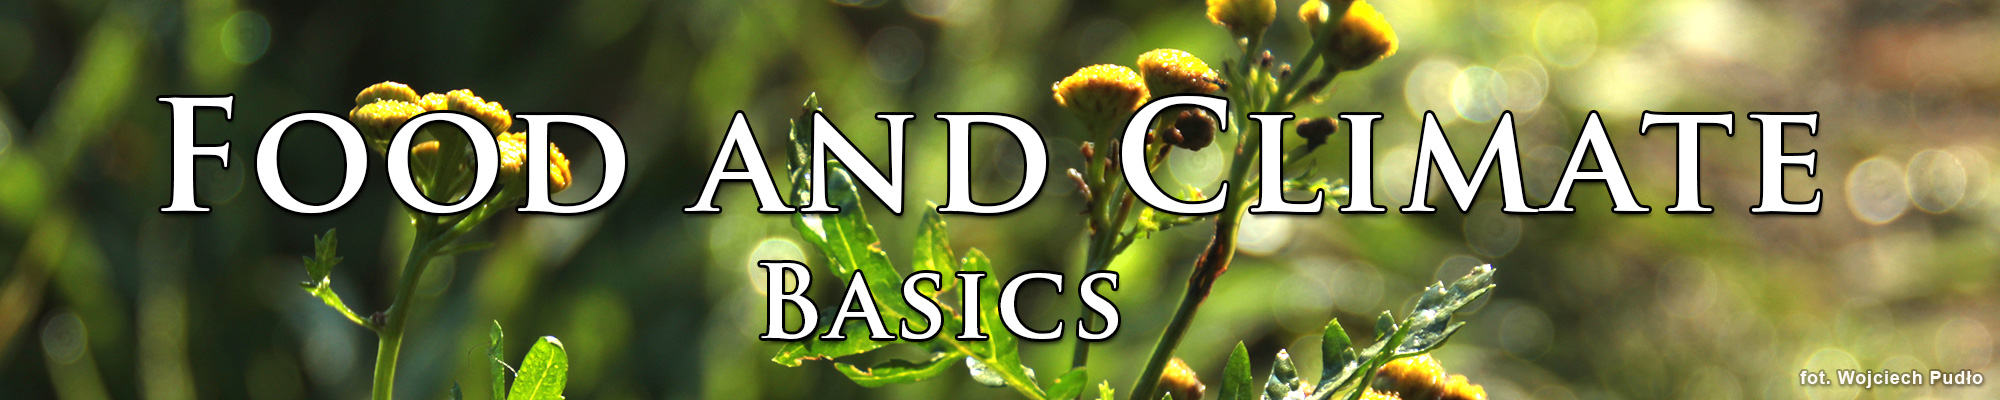 Topic: Food and Climate. Basics.